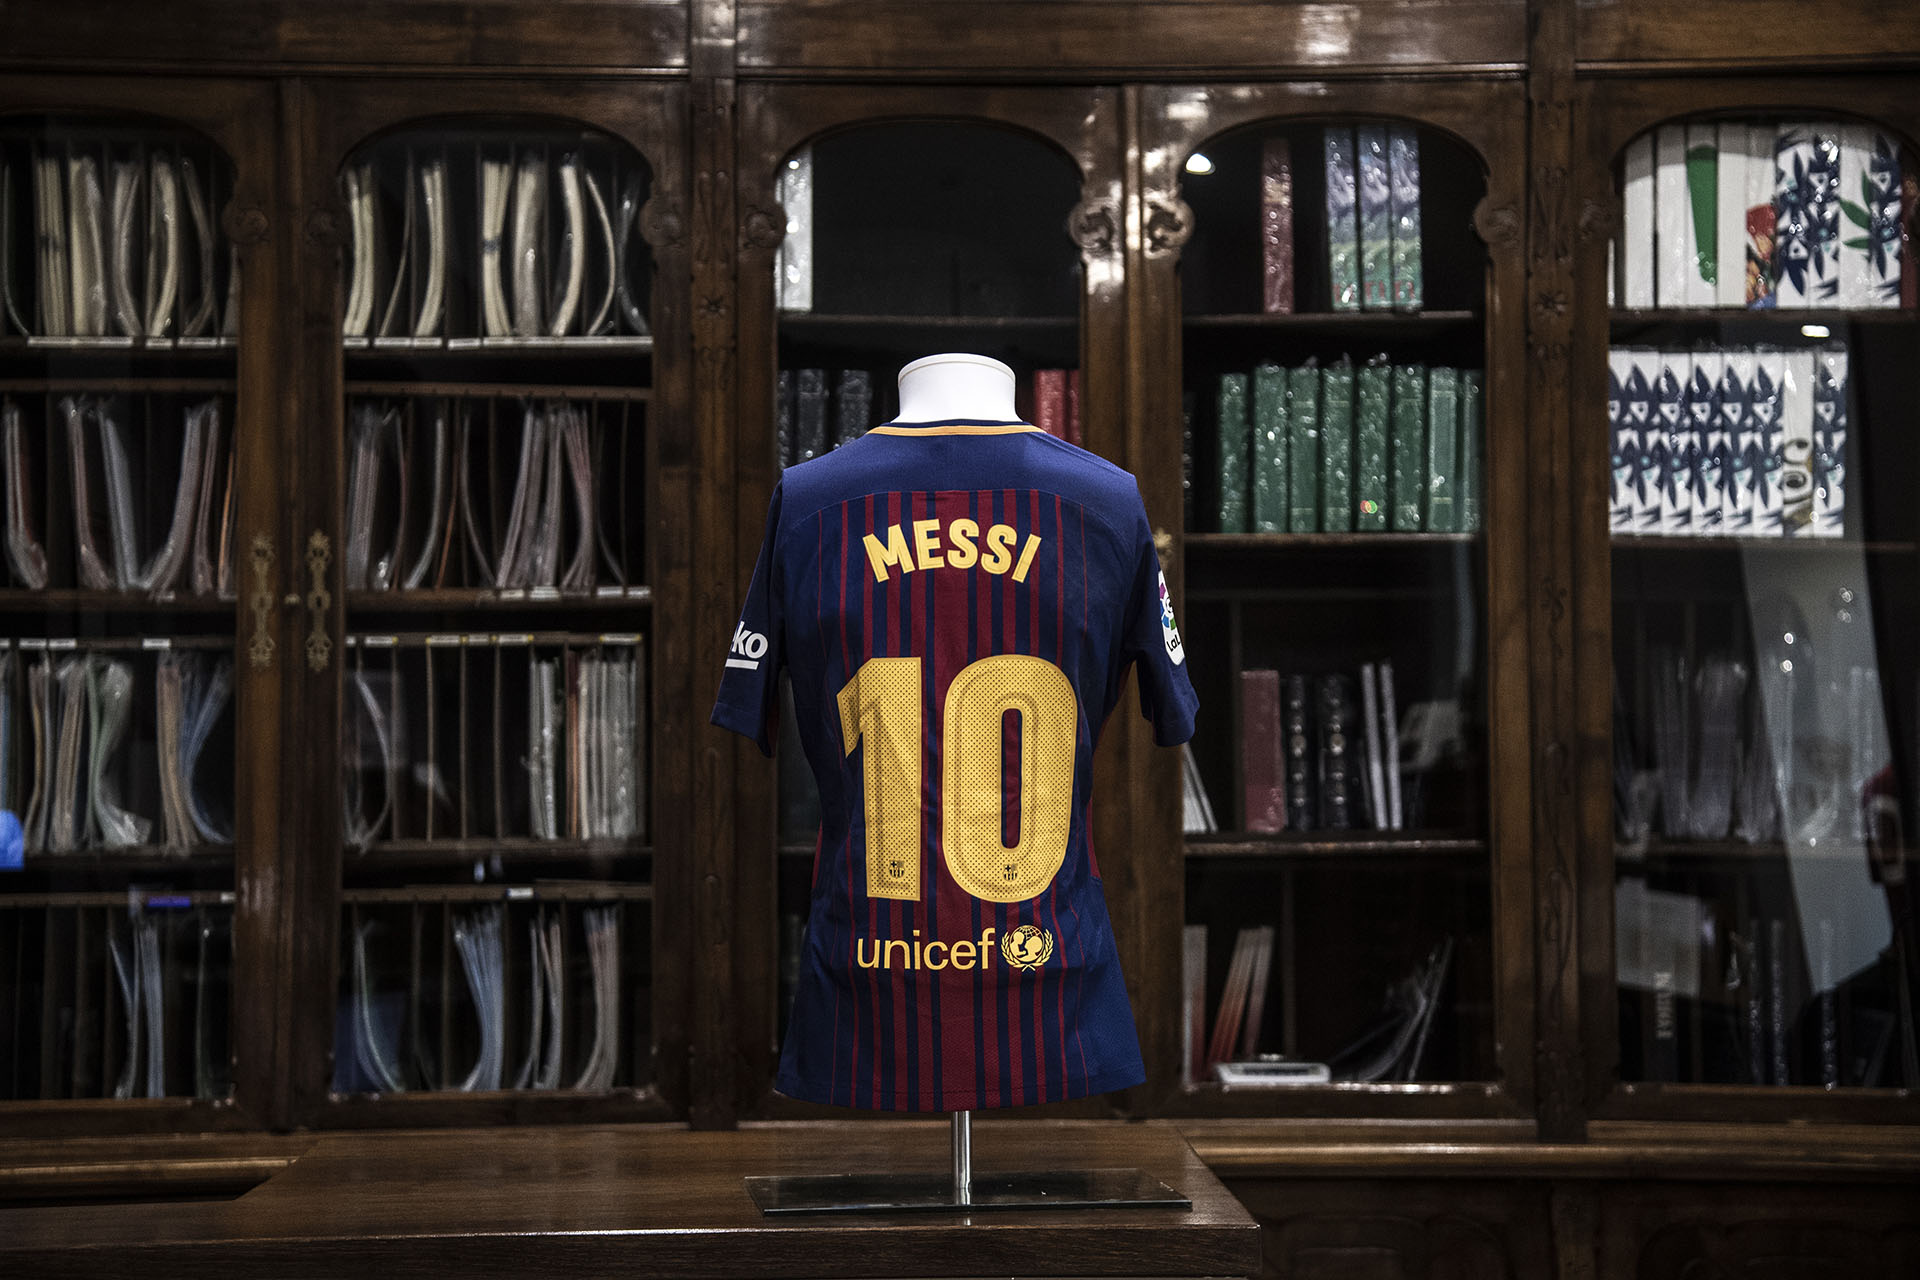 La camiseta de Lionel Messi es de la temporada pasada y tendrá un valor estimado de entre 750 y 1.000 euros (Photo by MARCO BERTORELLO / AFP)